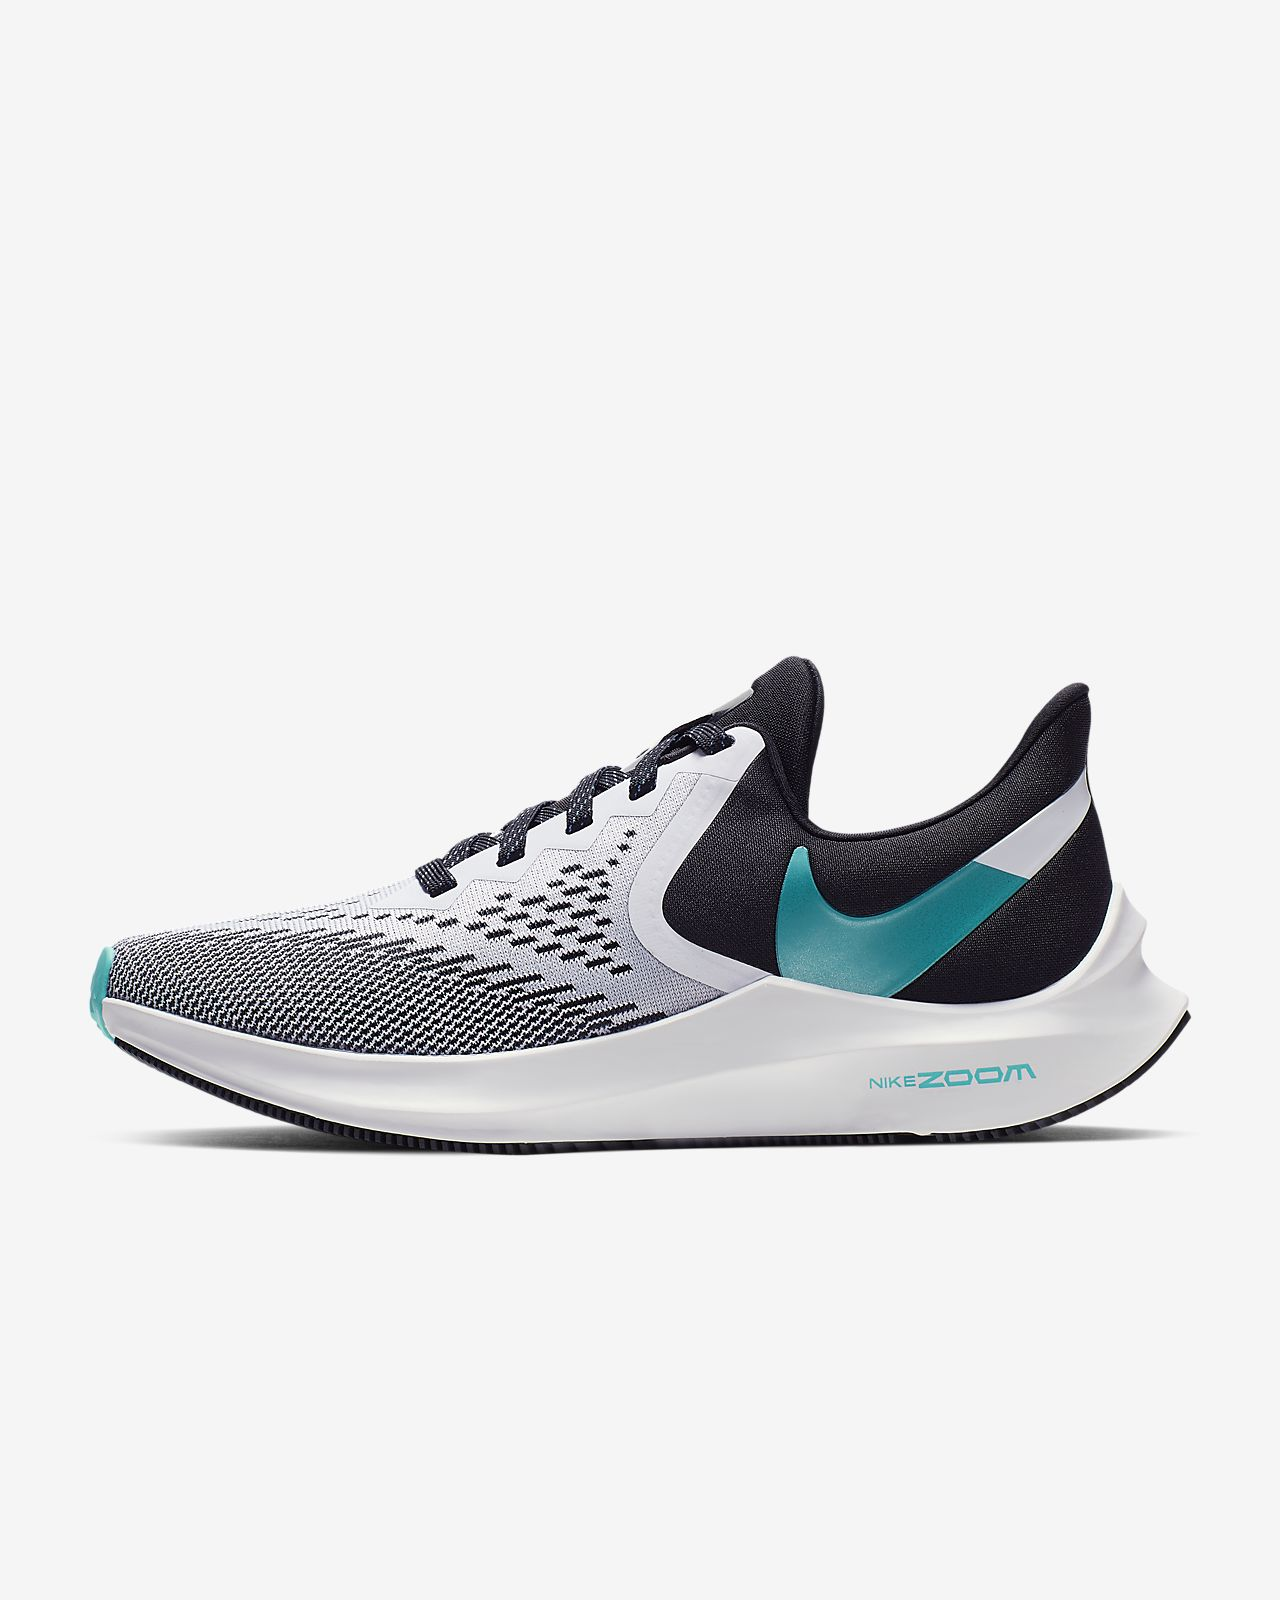 new style 1a903 0b457 Nike Air Zoom Winflo 6 Women's Running Shoe